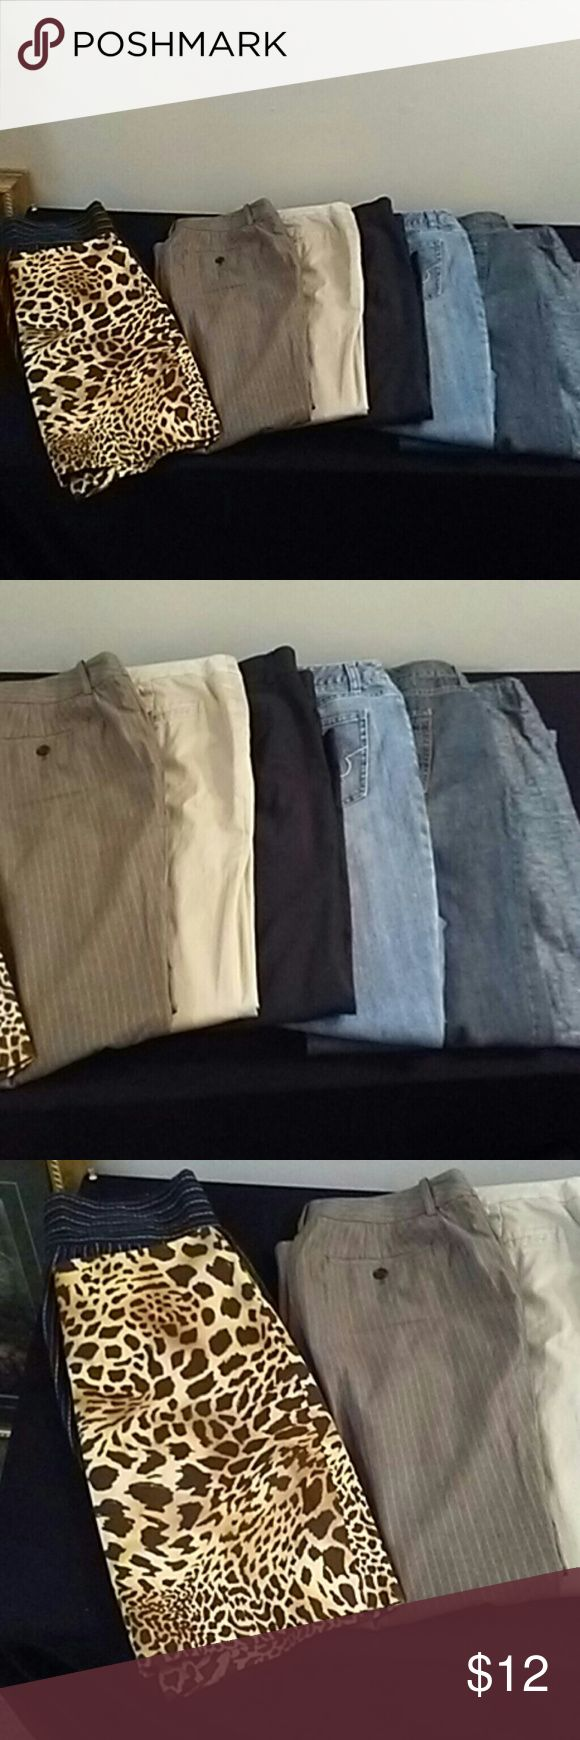 Women's 8pc Brand Name Clothing Lot All Size 8 Women's 8pc Brand Name Clothing Lot All Size 8 This Lot Includes Jeans Skirts Slacks Pants etc  Brands Include Ann Taylor Chicos Talbots Jones Newyork Eddie Bauer + A Few others Pants